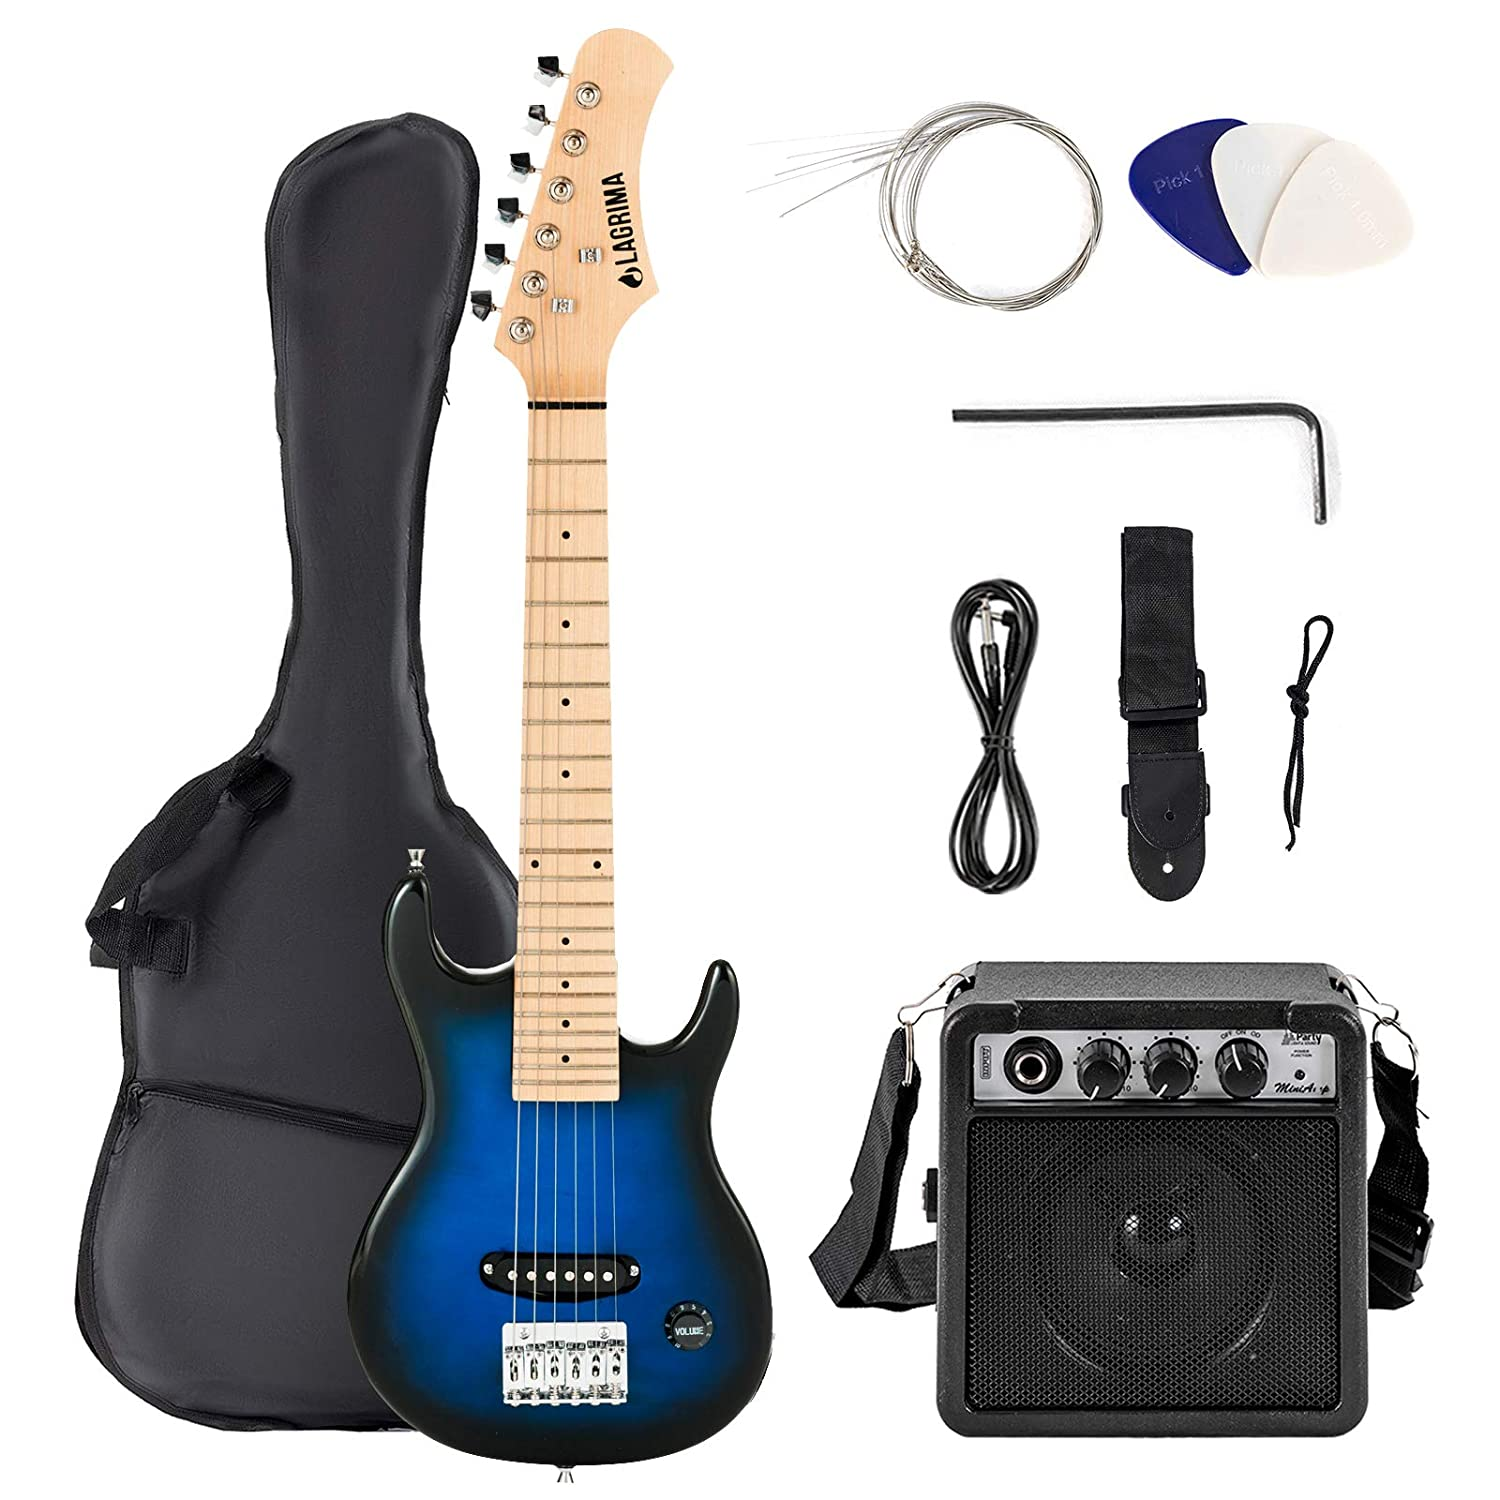 30, Black LAGRIMA/30 Inch Electric Guitar Starter Kit with 5W Amp Case and Accessories Pack Beginner Starter Package